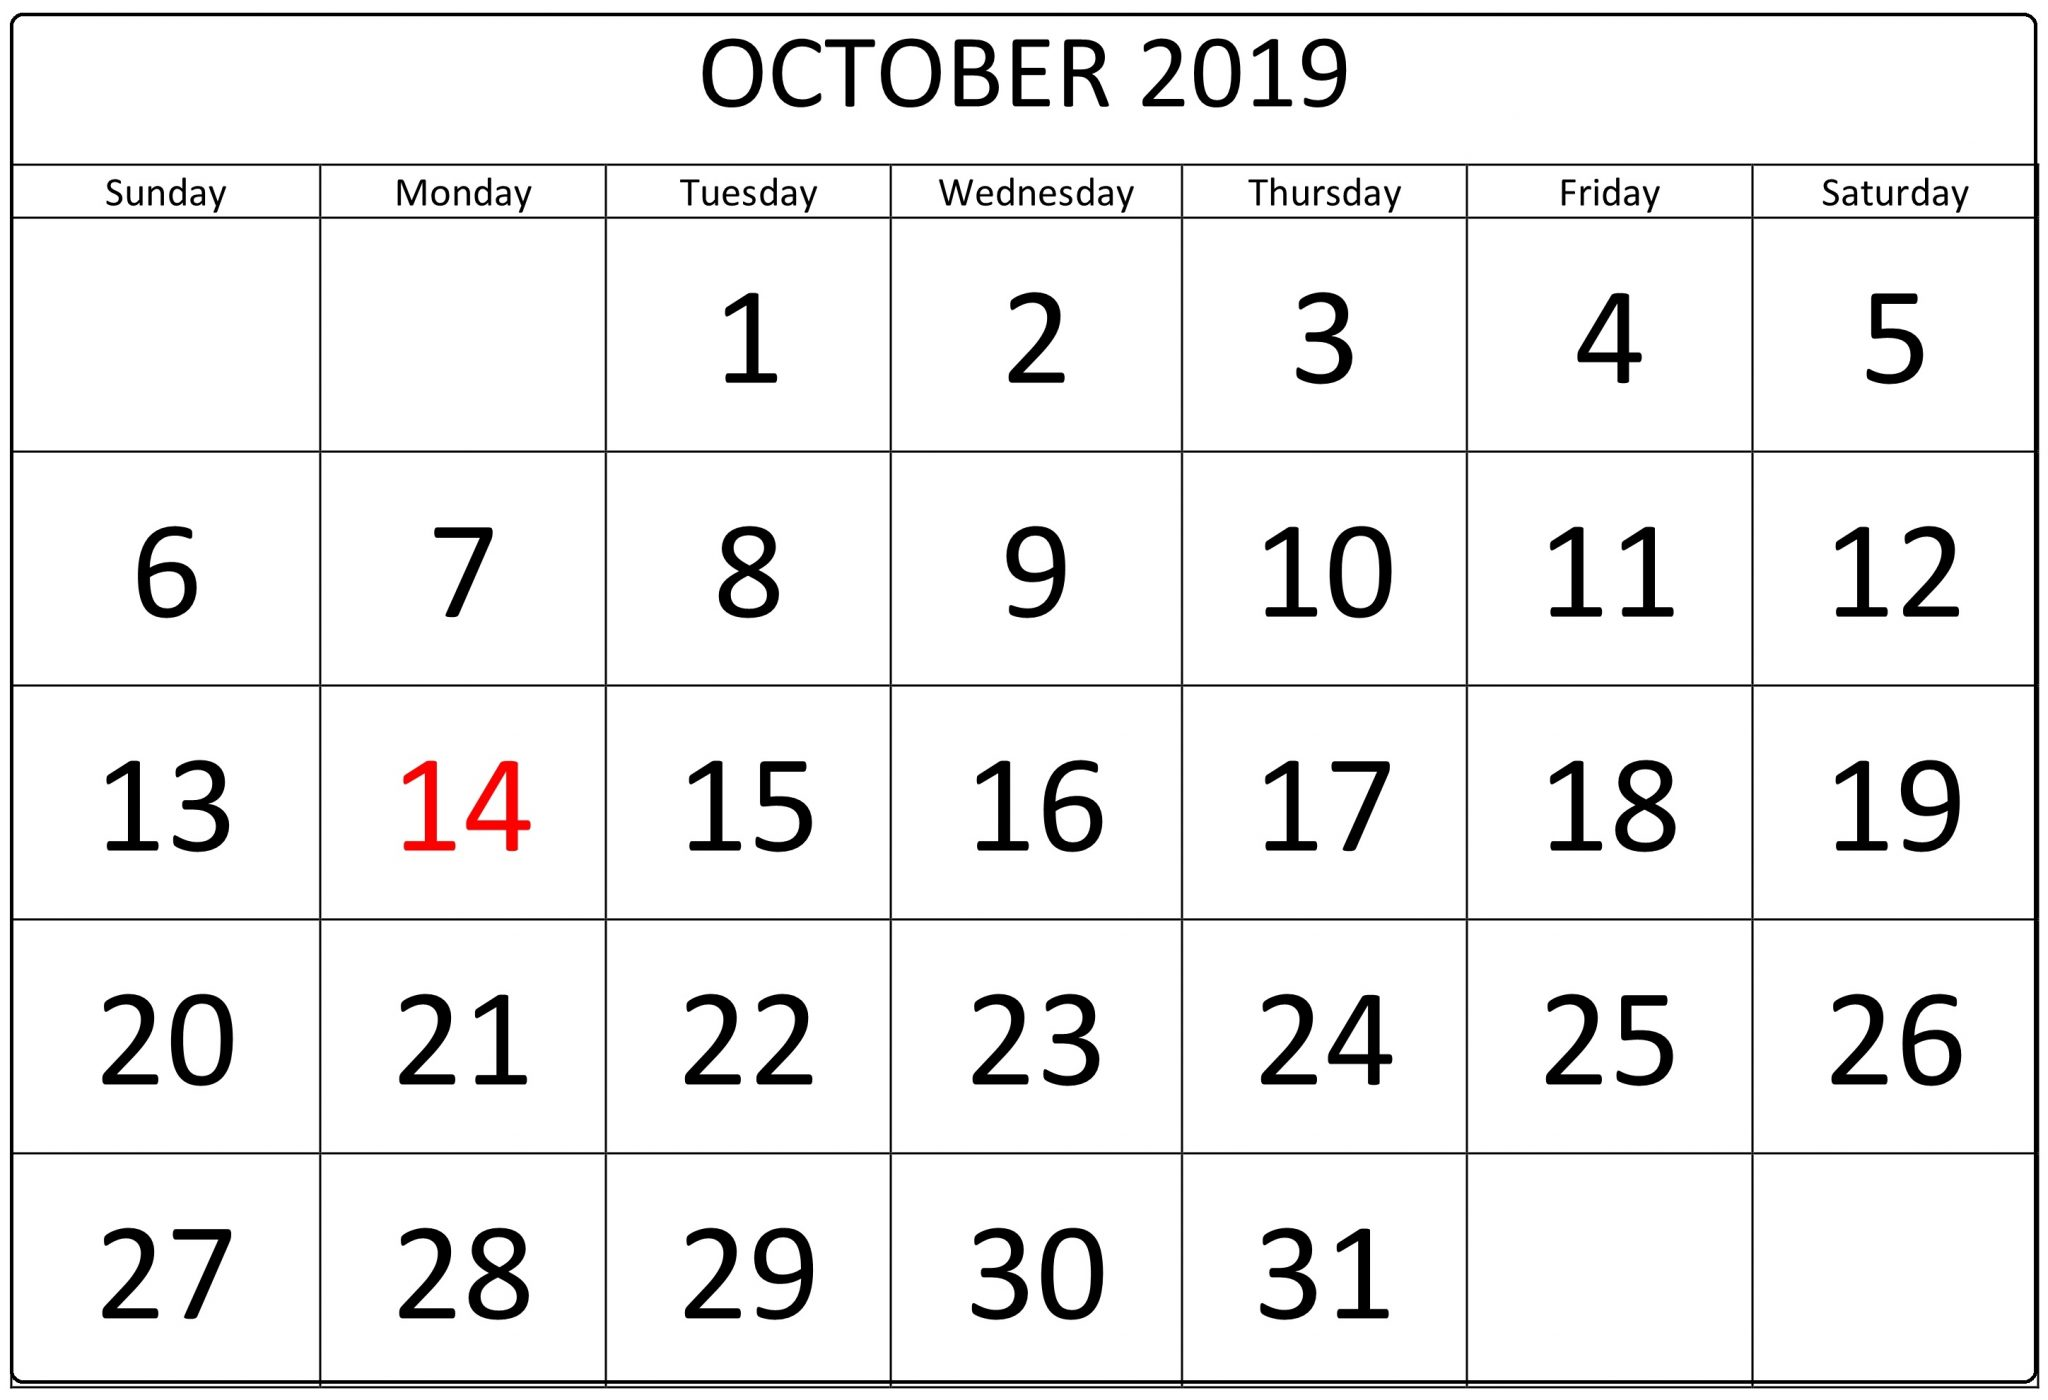 October 2019 Calendar Template With Holidays